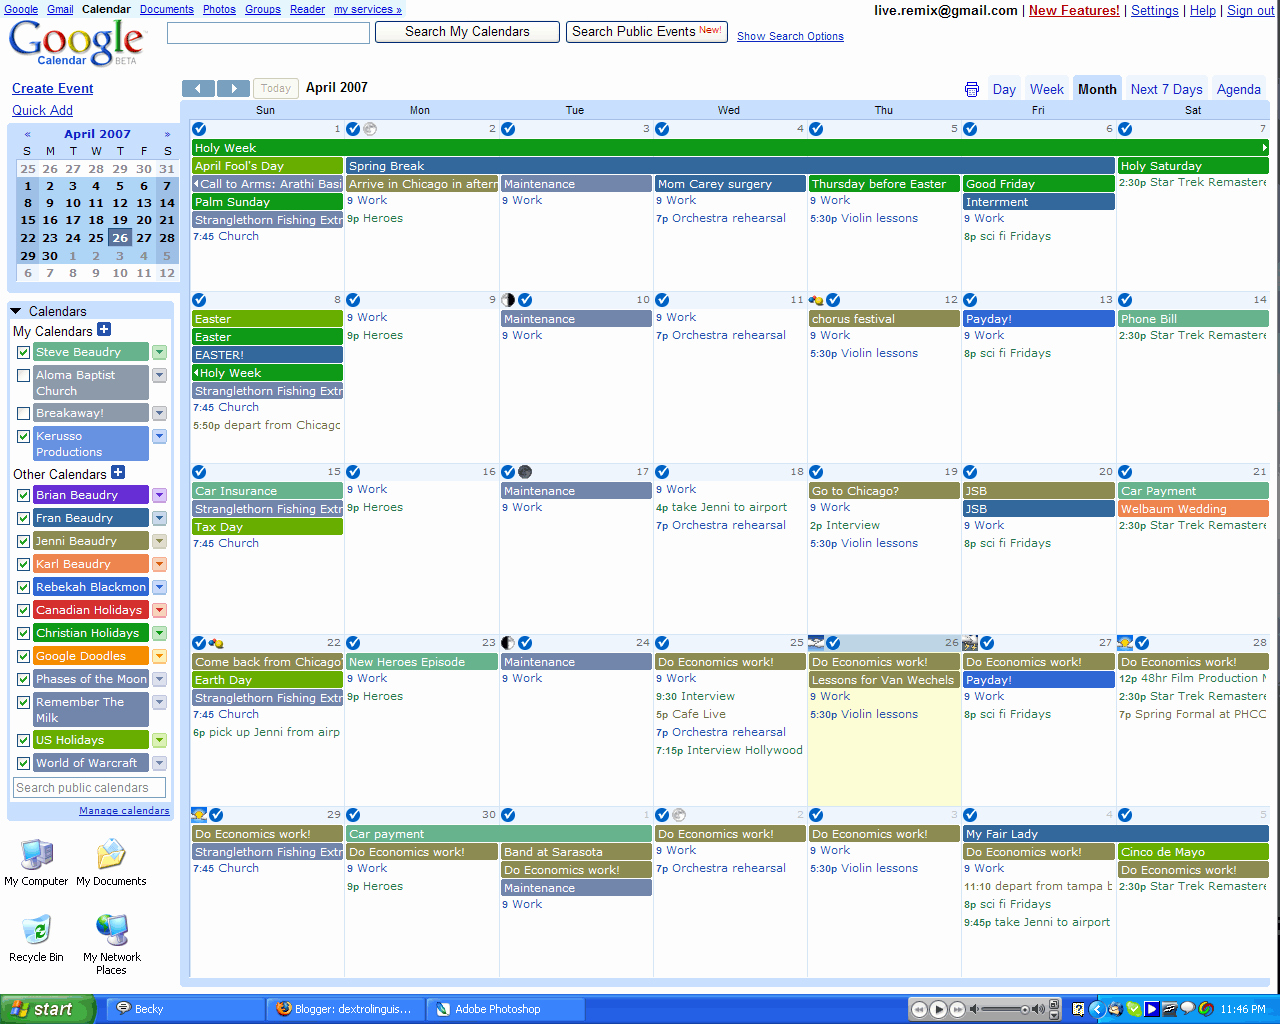 Editorial Calendar Template Google Docs Luxury 5 Simple Editorial Calendar tools for Content Marketing